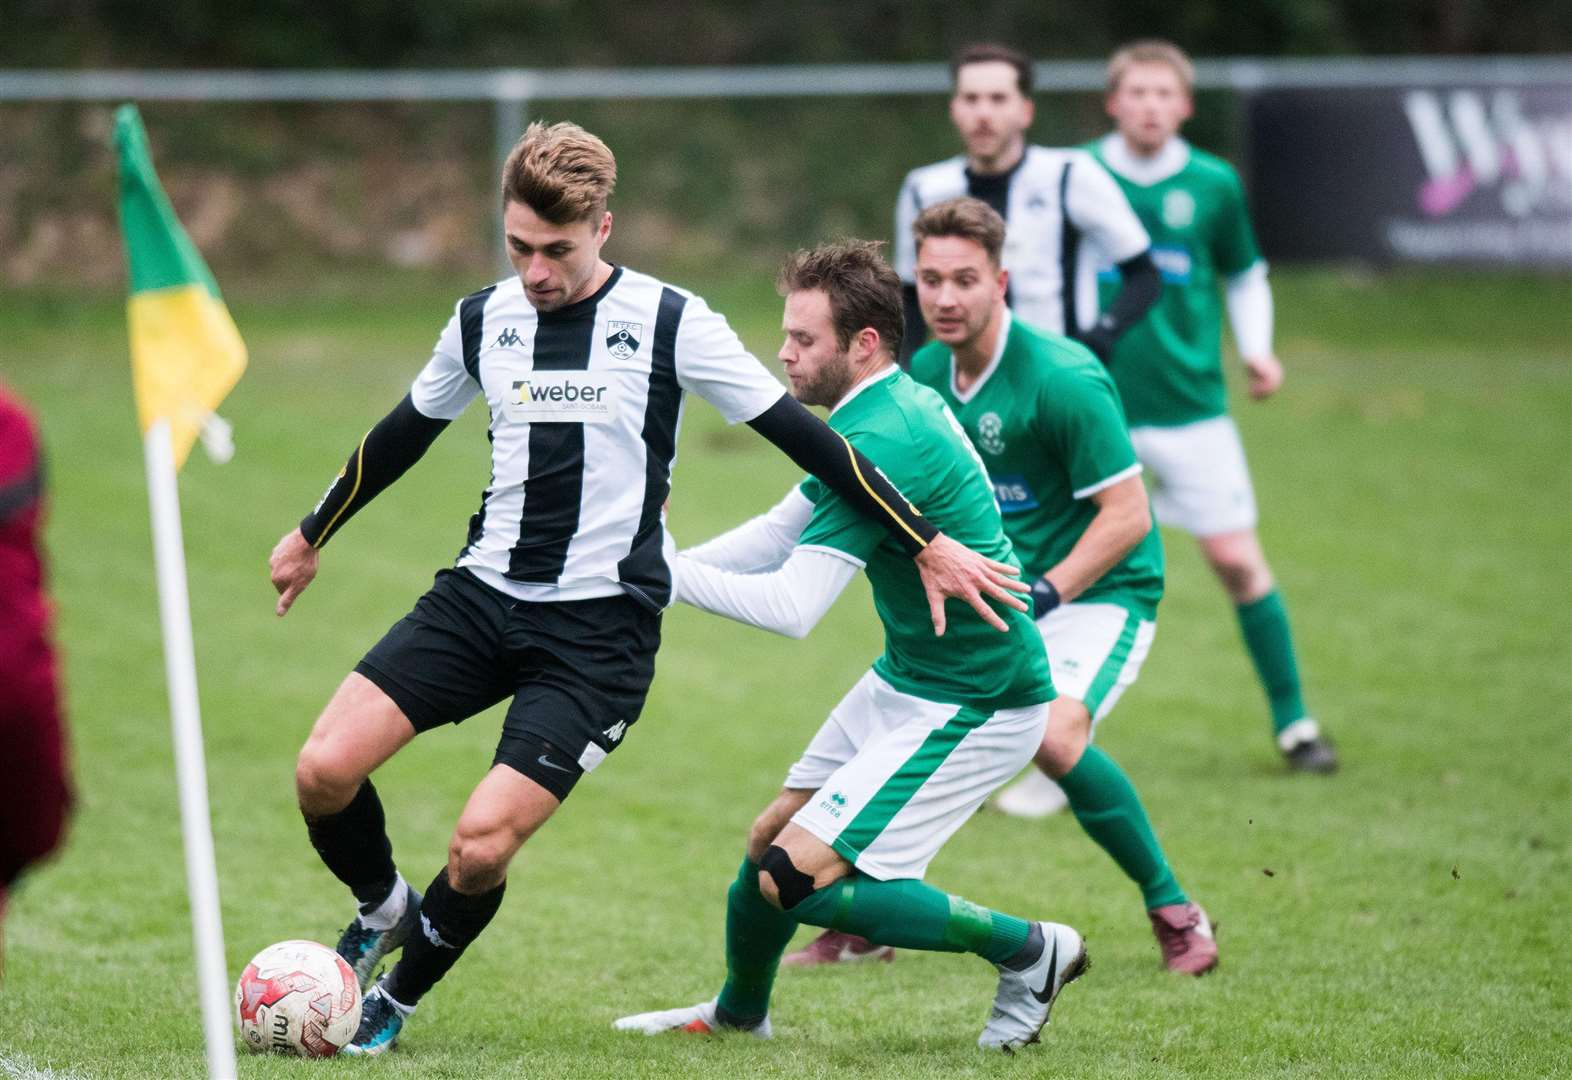 THURLOW NUNN: Borrer joins Gusterson at Dereham